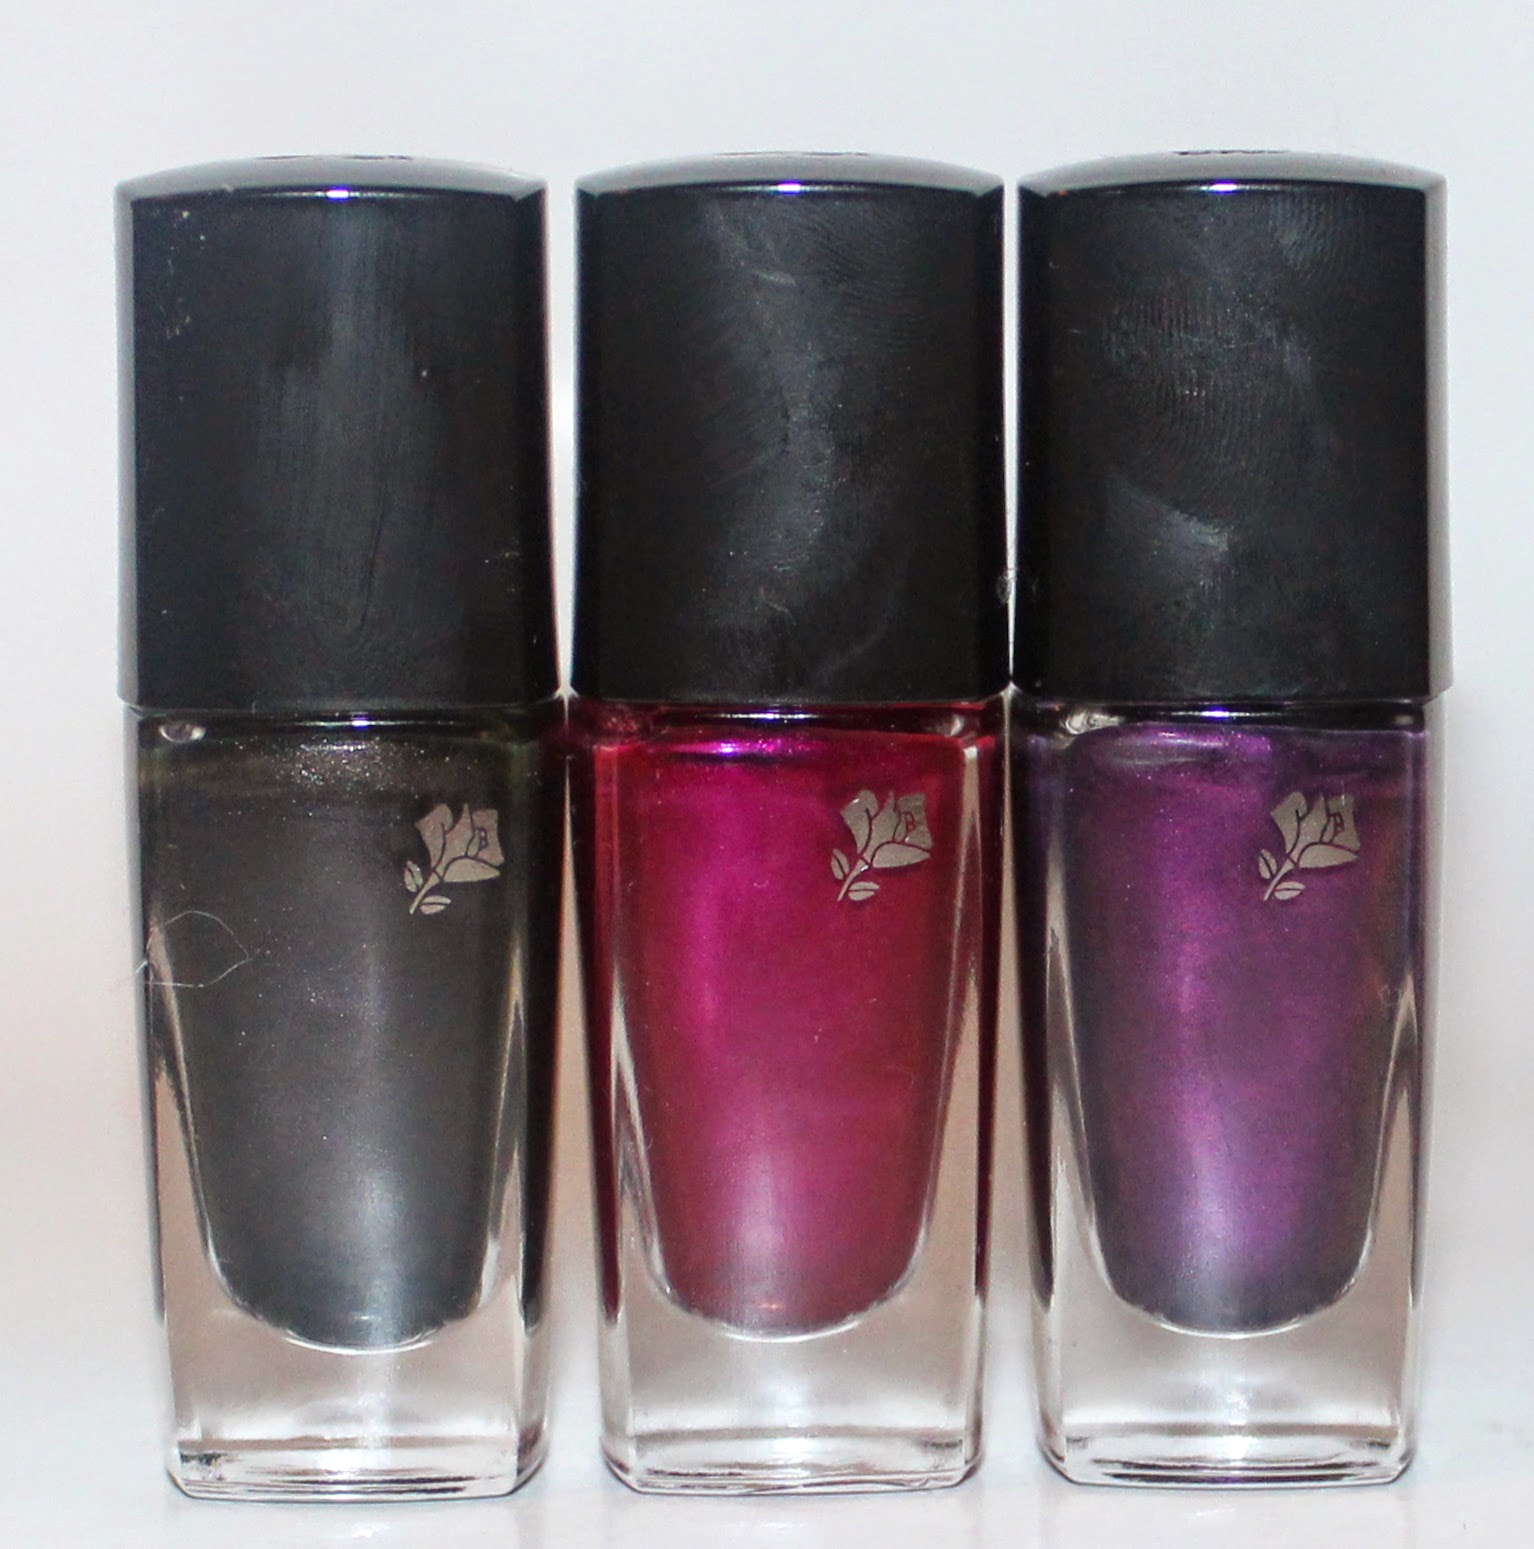 Lancôme French Idole Collection Vernis in Love